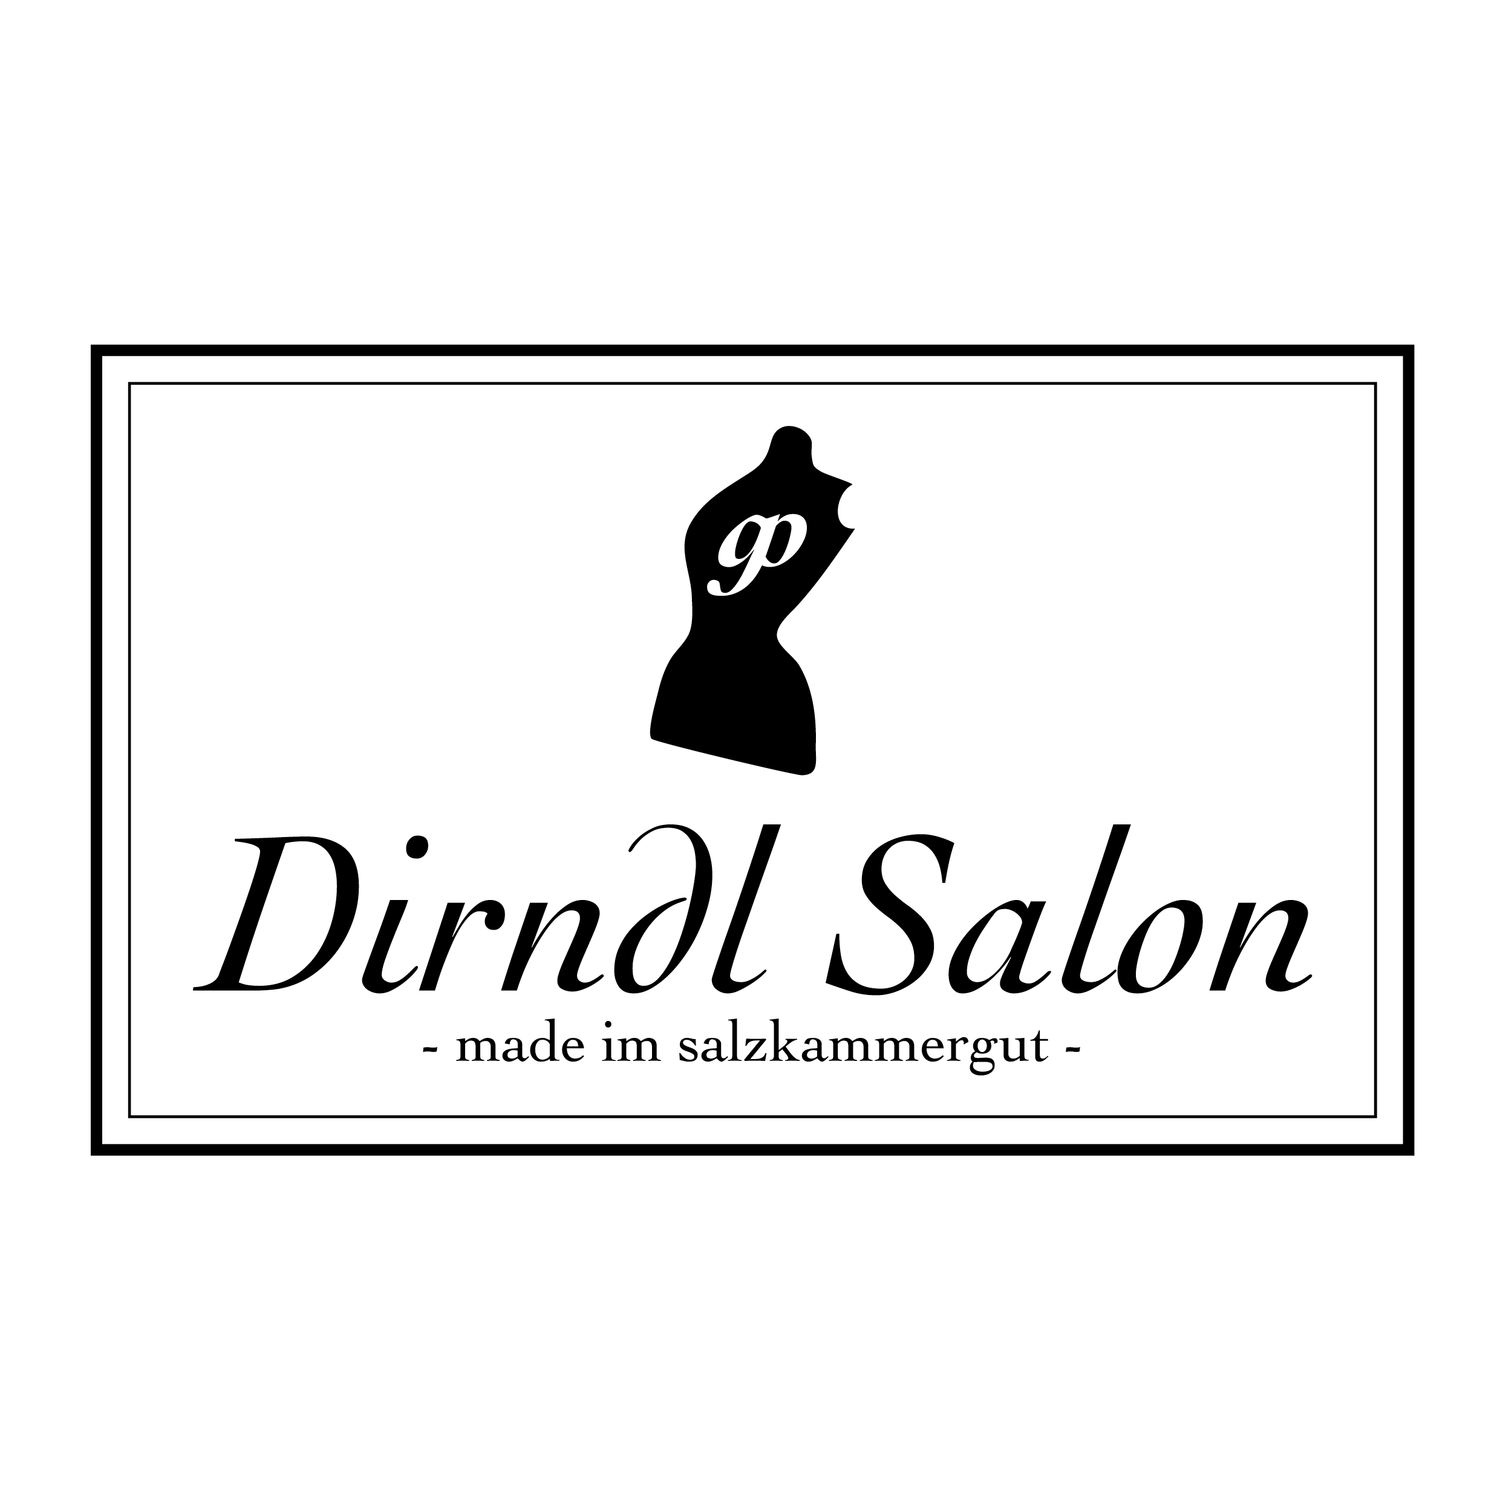 Dirndl Salon - made im salzkammergut